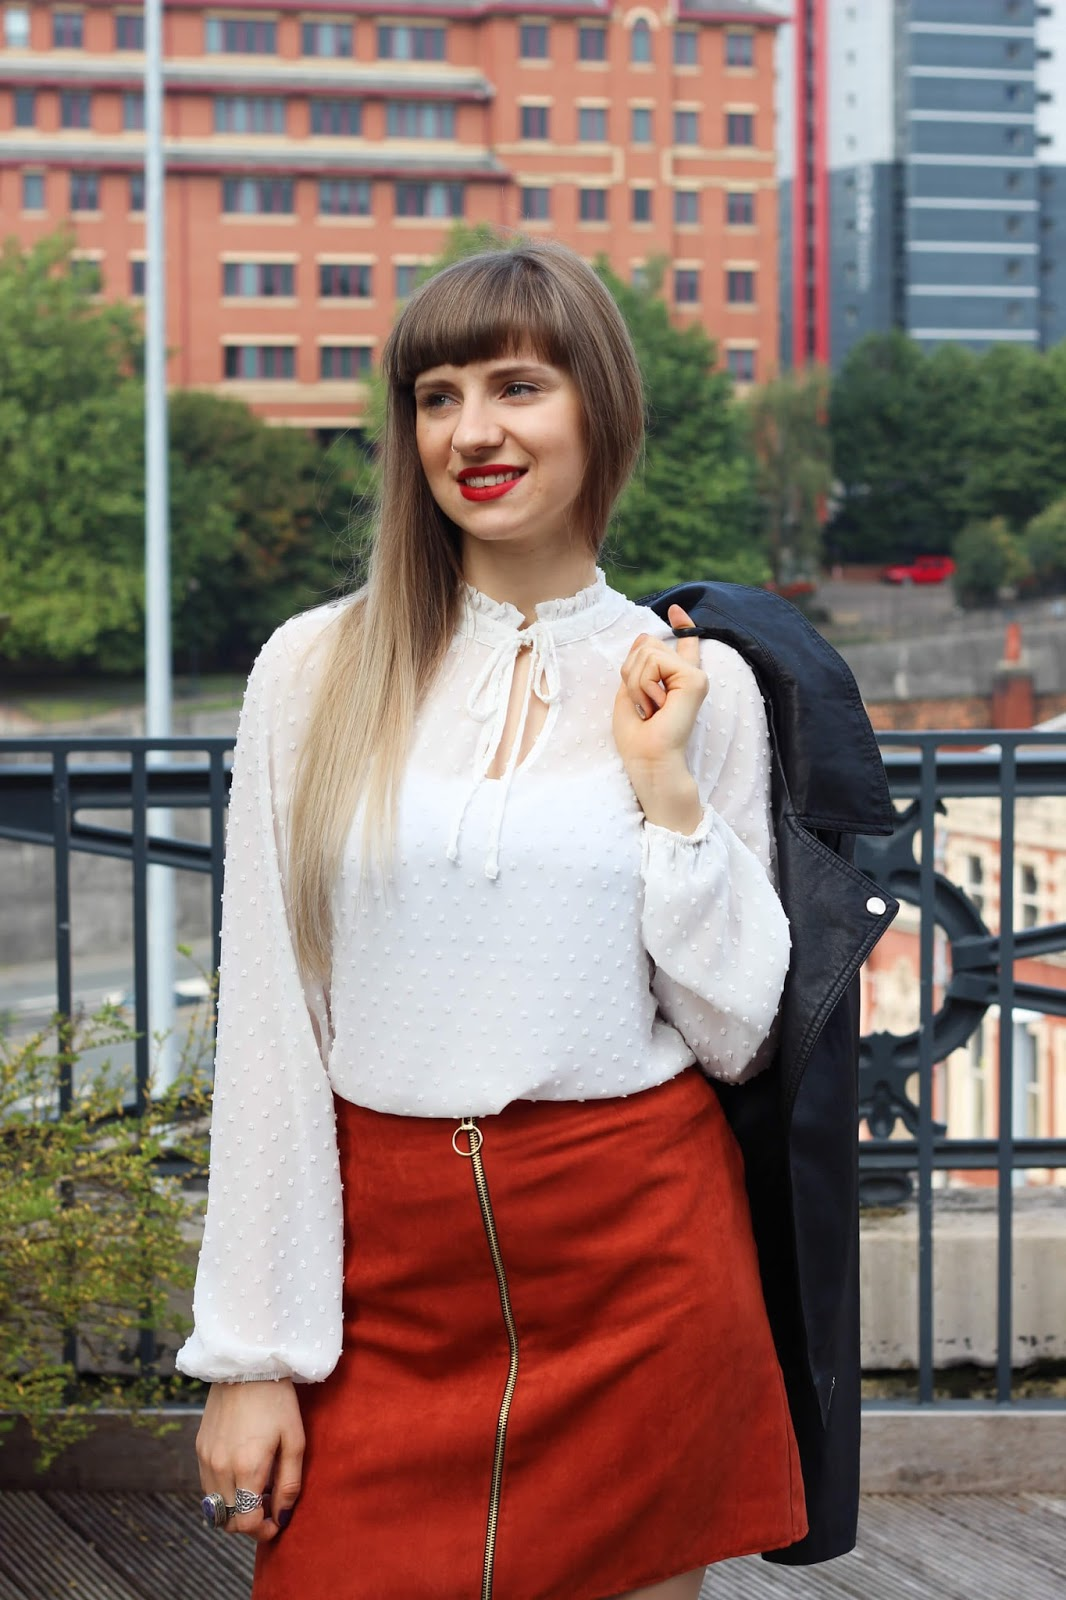 Leeds Lifestyle and Fashion Blogger